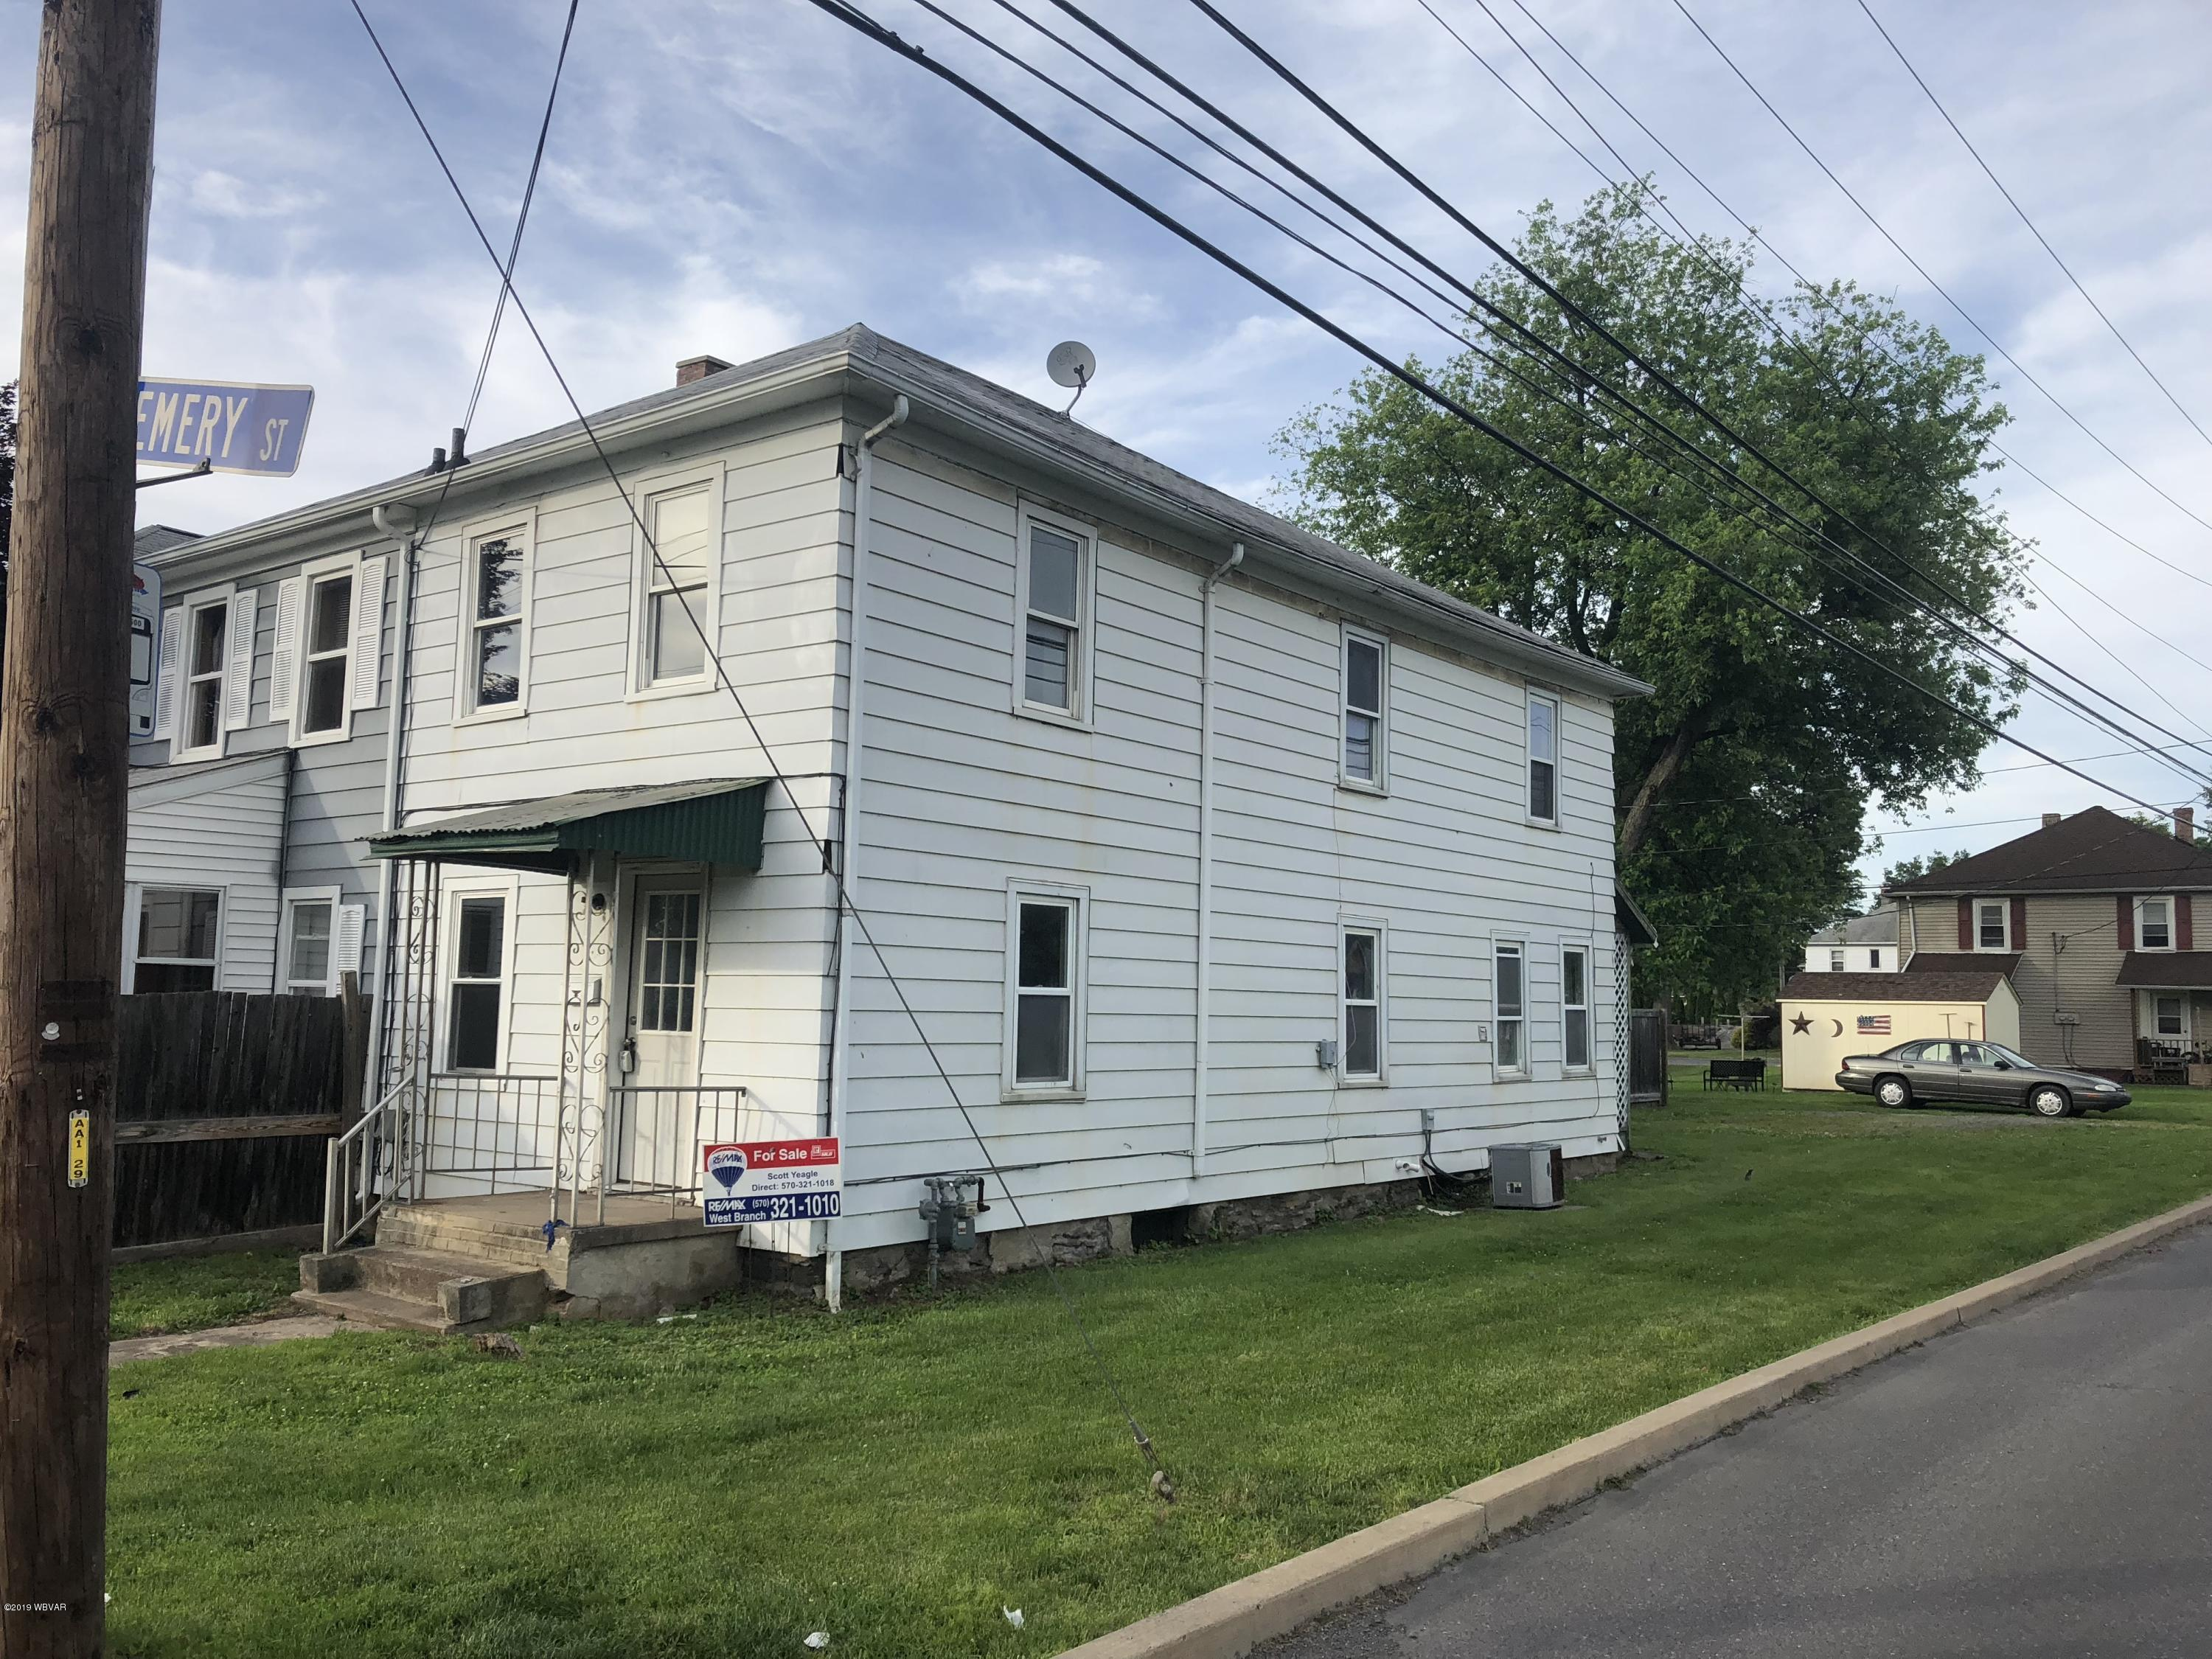 100 EMERY STREET,Williamsport,PA 17701,3 Bedrooms Bedrooms,1 BathroomBathrooms,Residential,EMERY,WB-86282